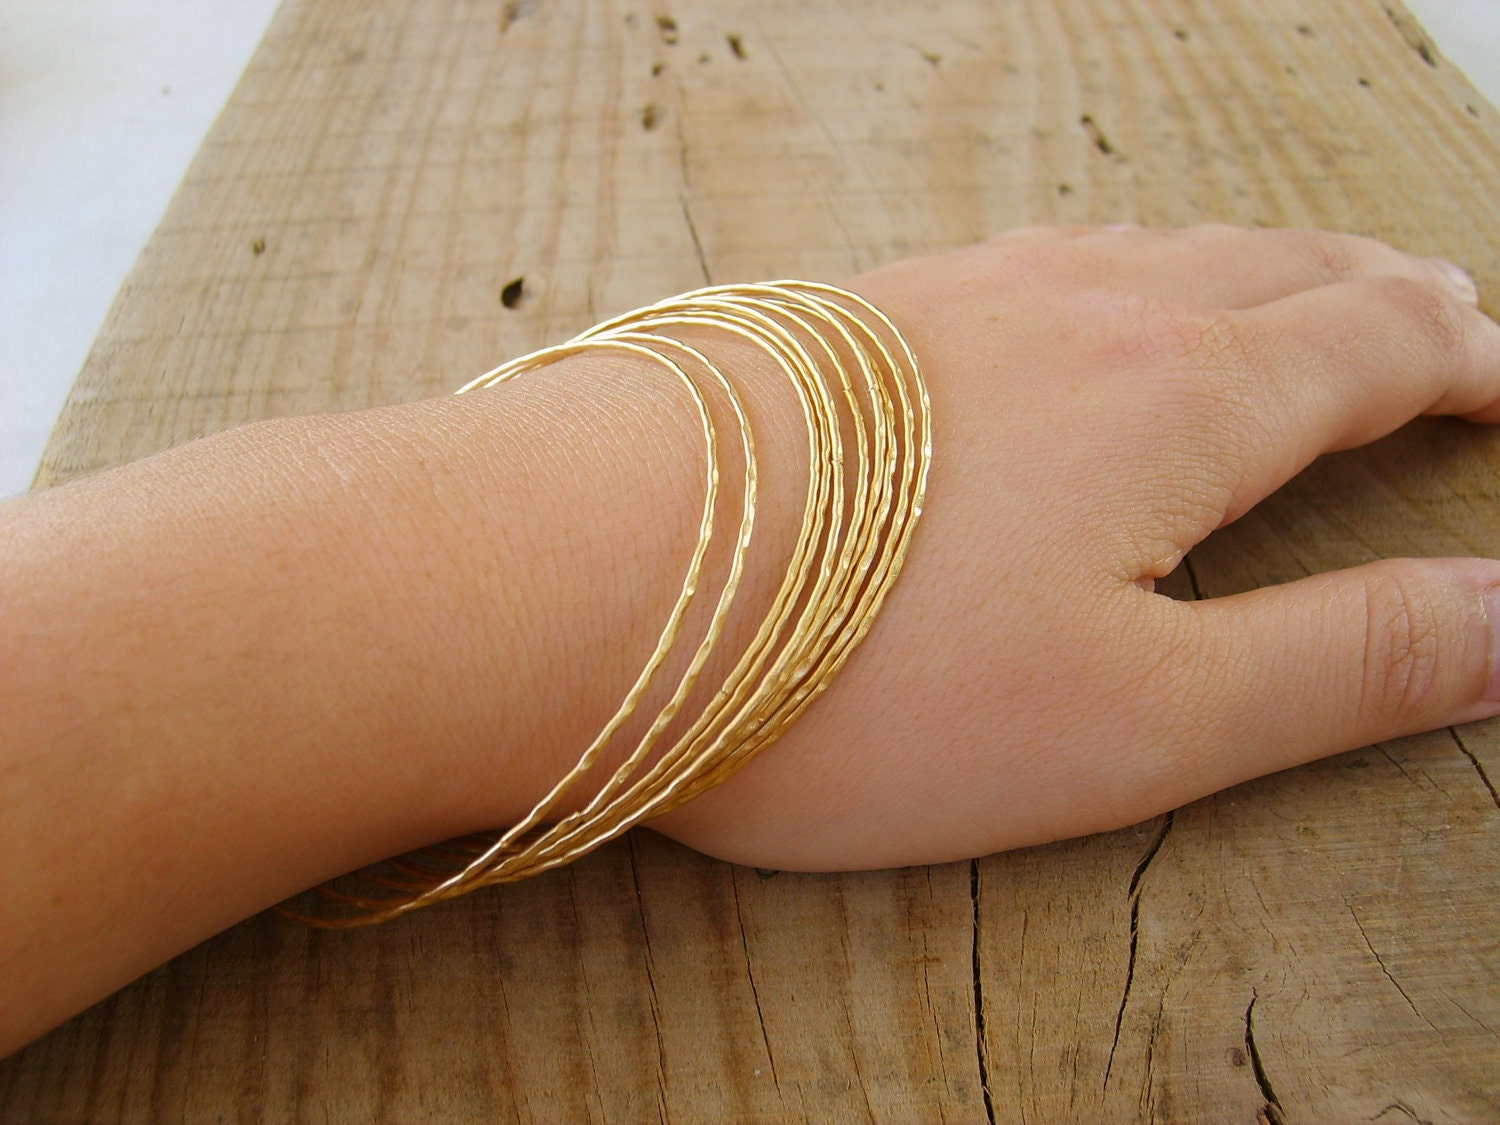 Hand Crafted Thin Bangle Bracelets In Gold Gold Bangle. Beautiful Bangles. V Shaped Wedding Rings. Creative Rings. Classic Style Engagement Rings. Infinity Engagement Ring With Wedding Band. Sporty Watches. Metal Bangles. Acrylic Bangles